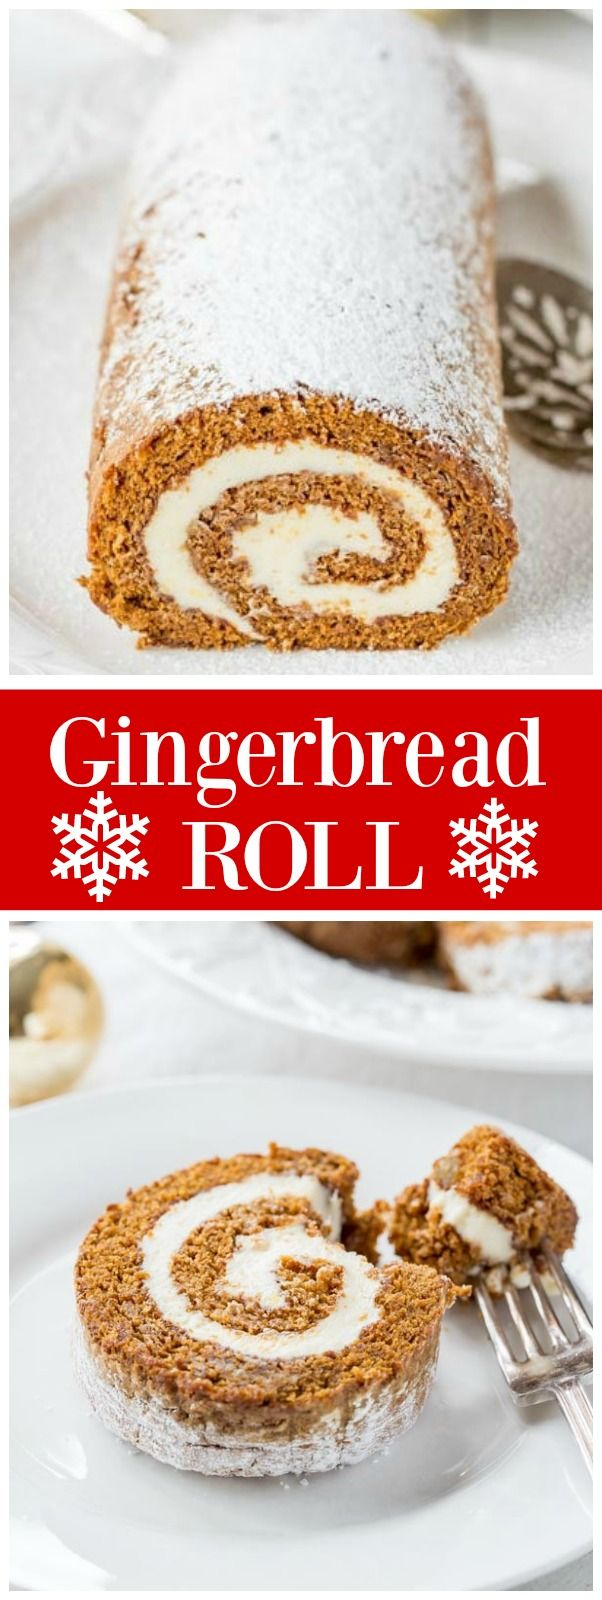 This easy Gingerbread Roll recipe is the perfect elegant holiday dessert recipe! From @recipegirl